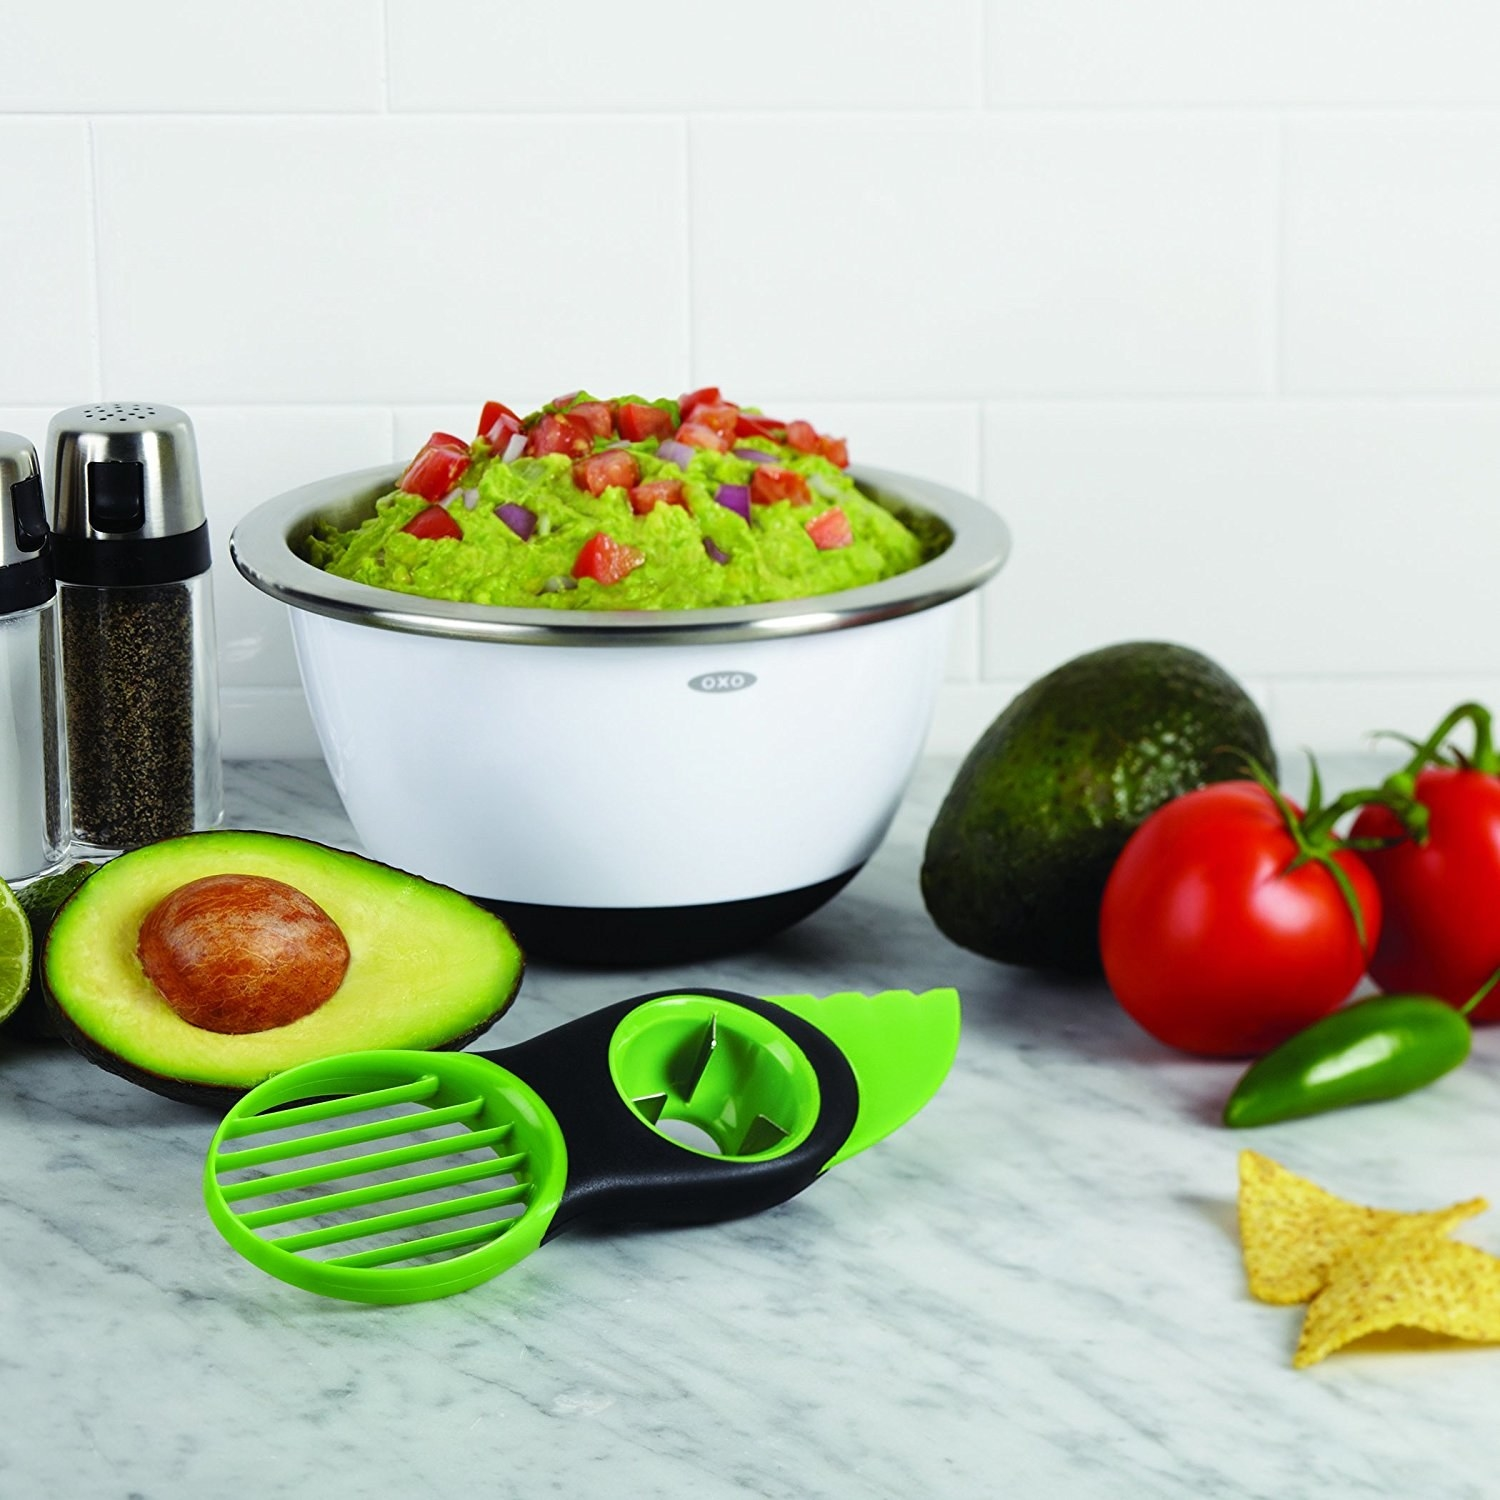 "Get it from Walmart for $9.99.Promising review: ""I love guacamole and this device saves me so much time. It cuts, deseeds, slices and mashes with ease."" —Jfort"